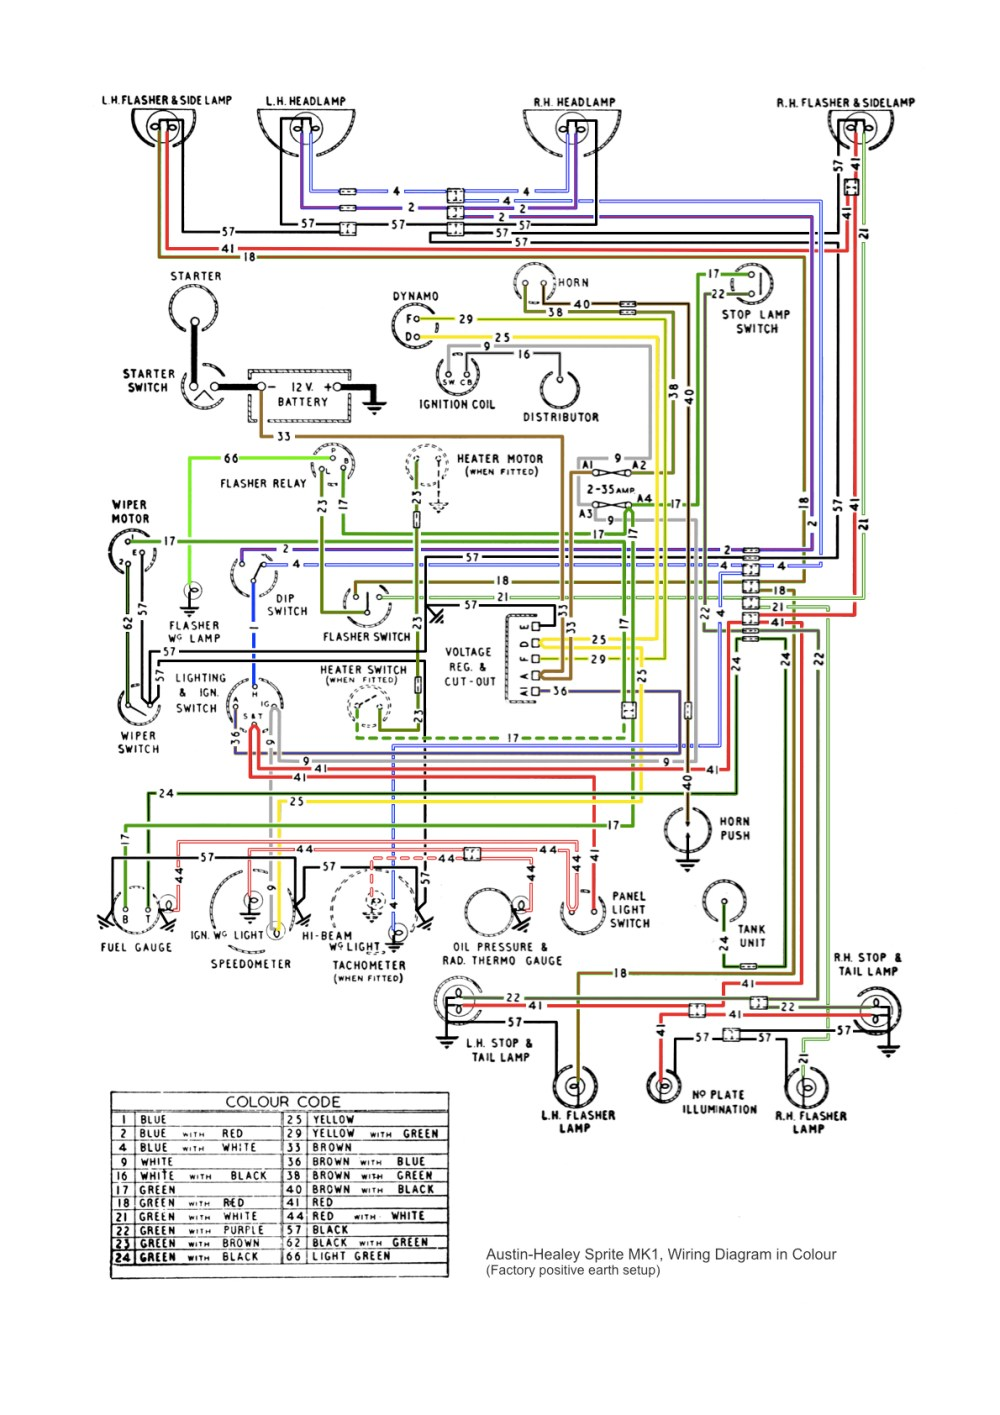 medium resolution of austin mini wiring diagram simple wiring schema rh 44 aspire atlantis de panasonic tv wiring diagrams wiring schematic hp1202b 24v 2a